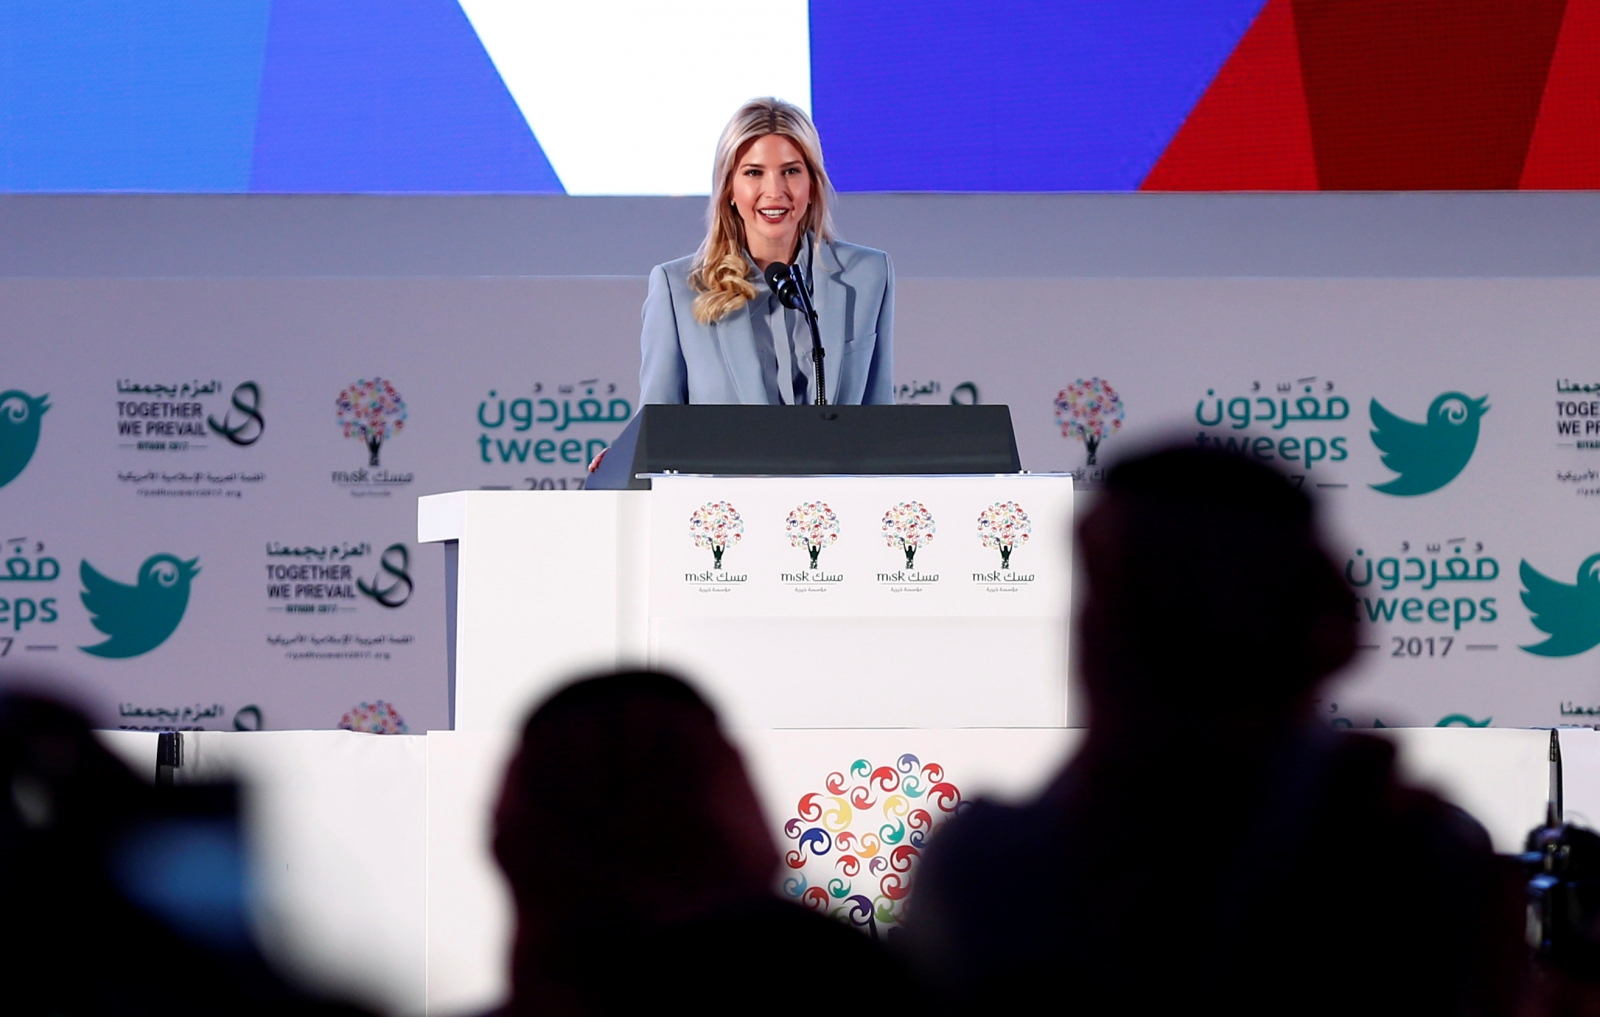 ivanka-trump-at-twitter-forum-young-muslims-can-build-a-future-of-tolerance-hope-and-peace